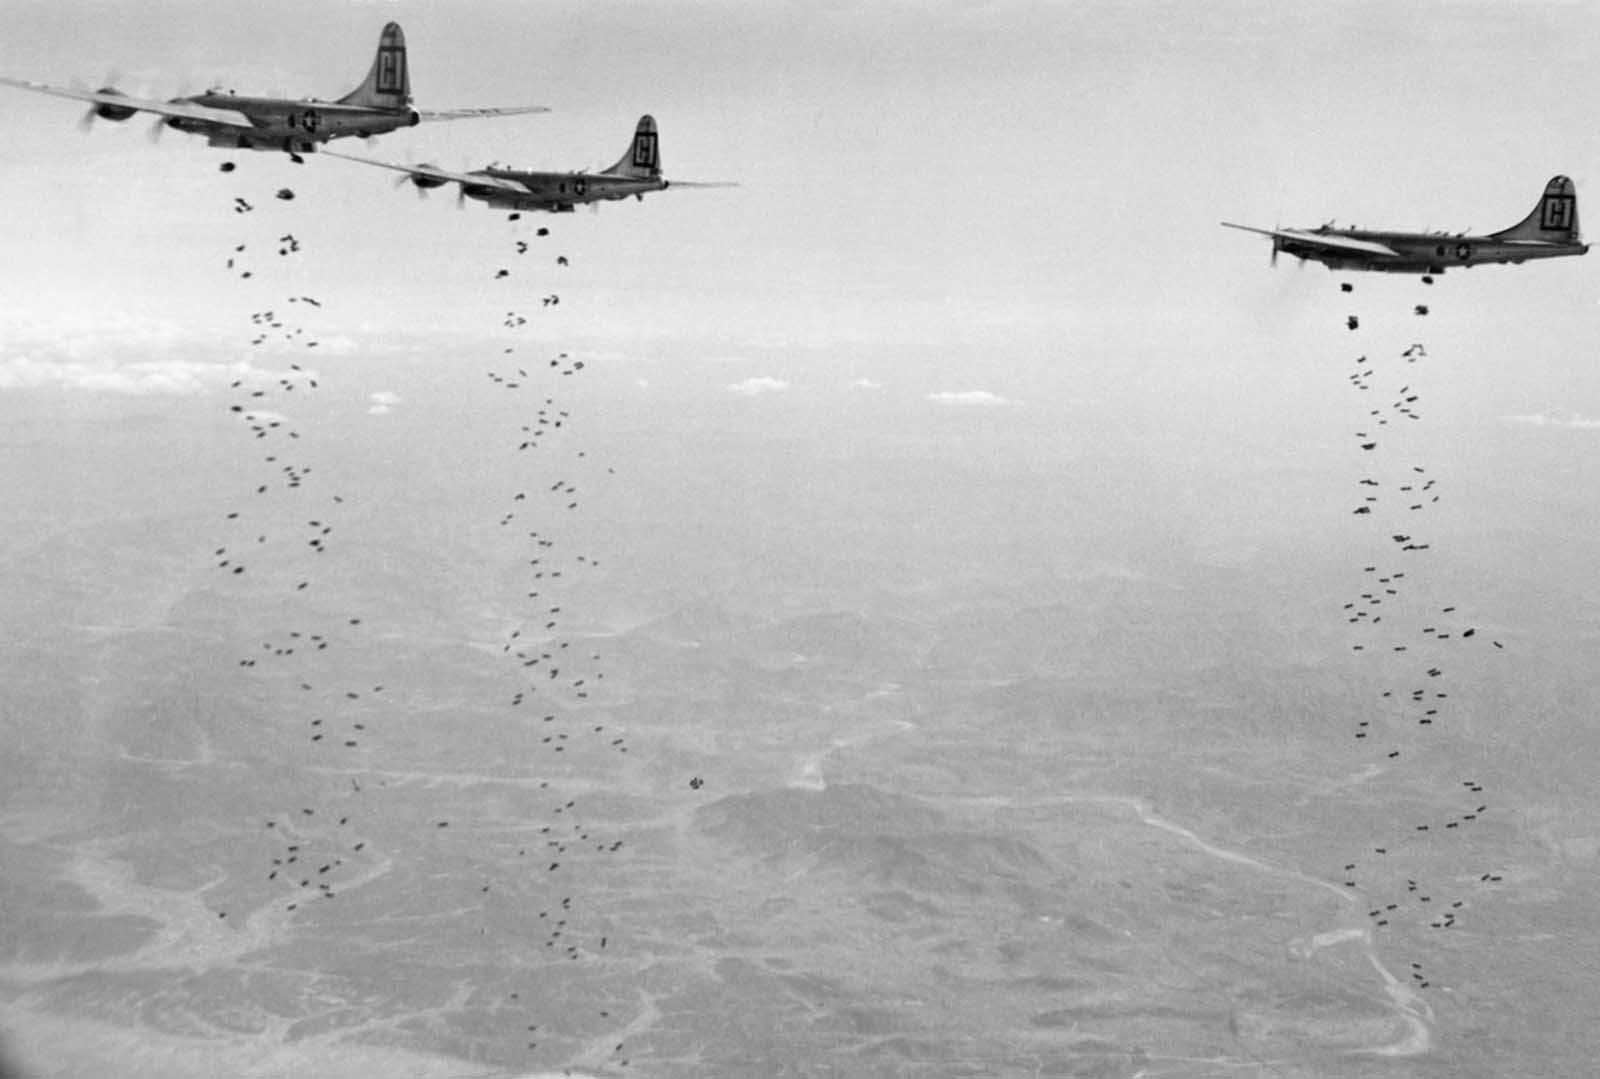 Bomber Command planes of the U.S. Far East Air Forces rain tons of high demolition bombs on a strategic military target of the Chinese Communists in North Korea on January 18, 1951.